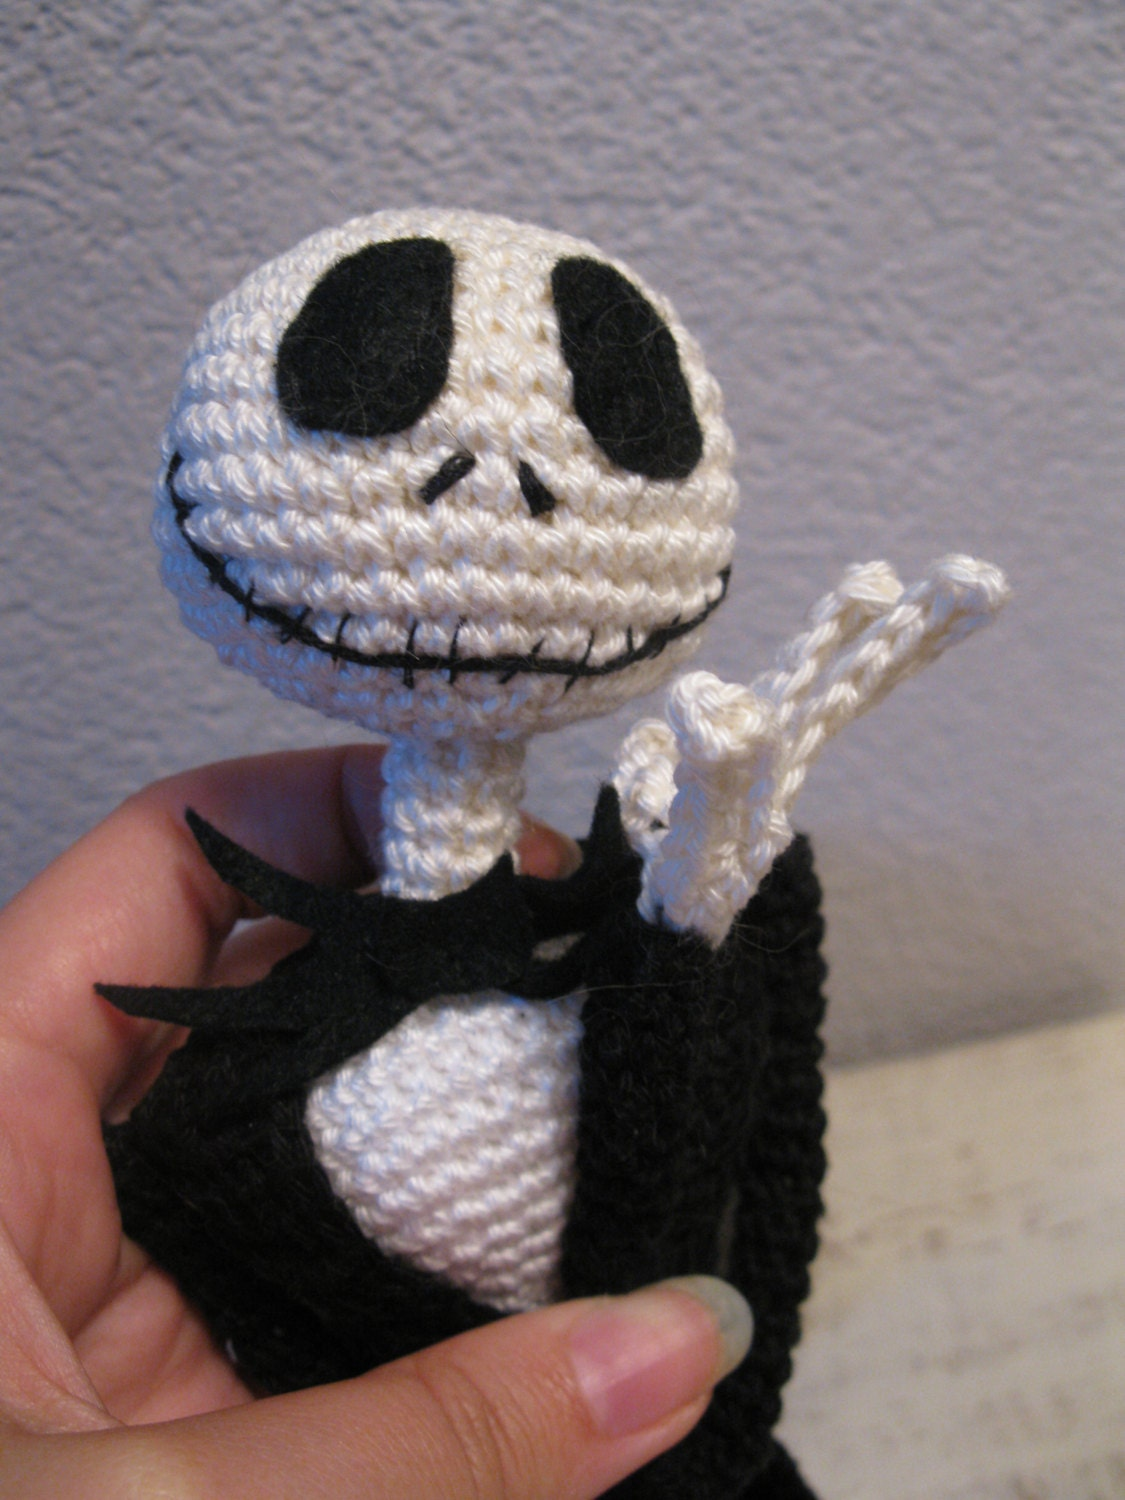 Amigurumi Jack Skellington Pattern : Jack Skellington crochet pattern 16 inch, ready for ...